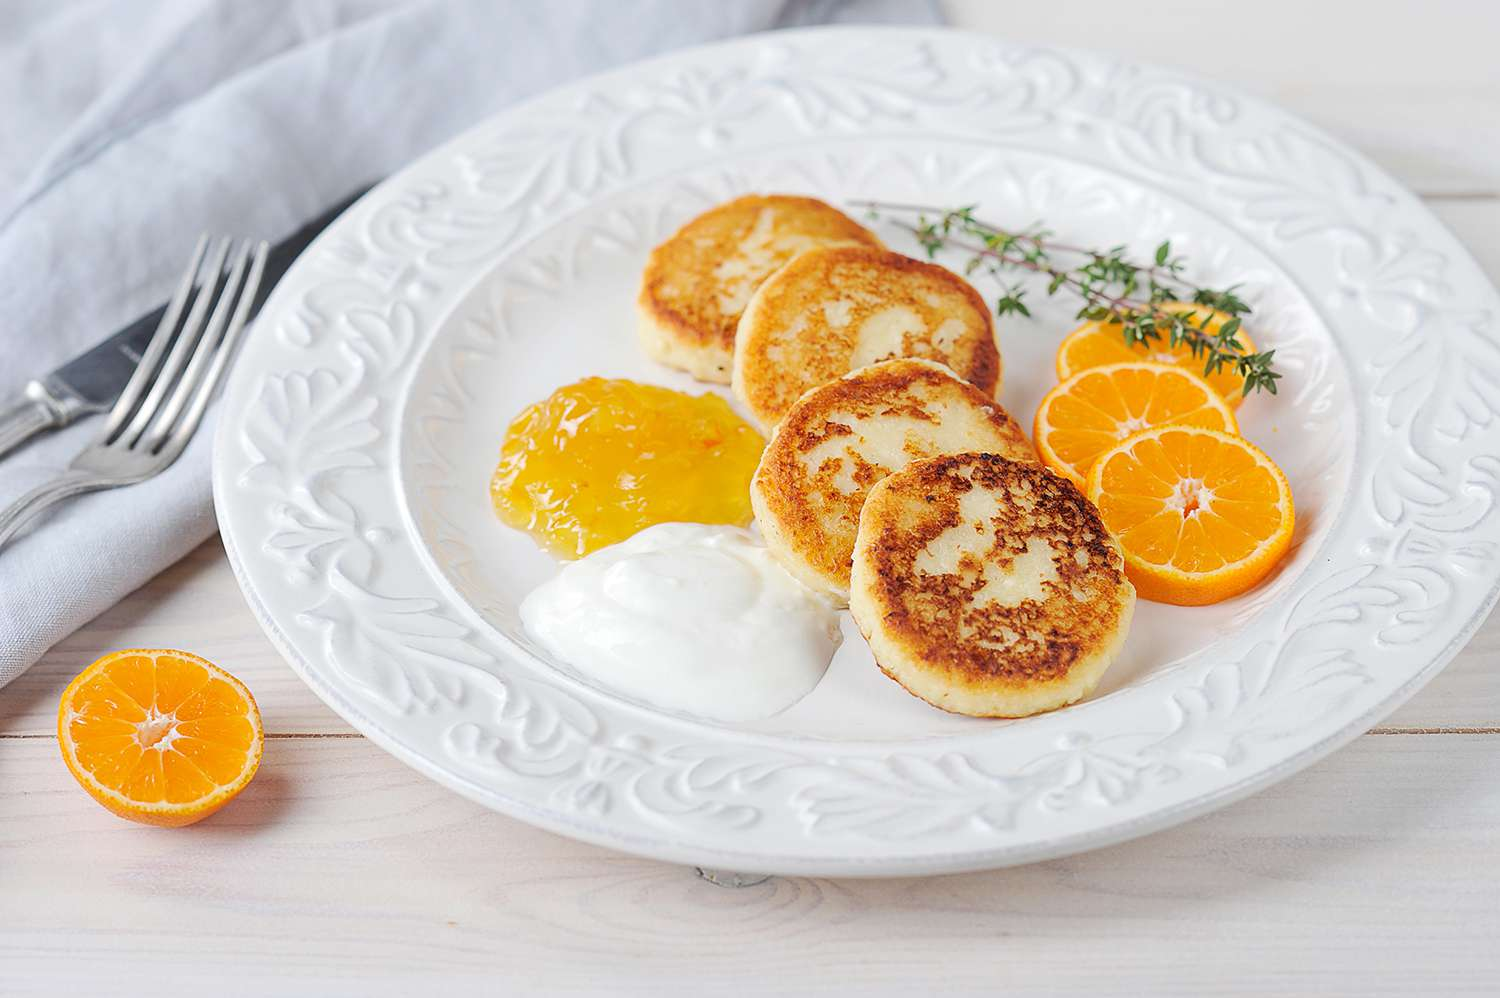 Cheesecakes with citrus jam and sour cream on a white plate. Next to the plate is a cloth napkin and cutlery. The composition is complemented by slices of mandarin.